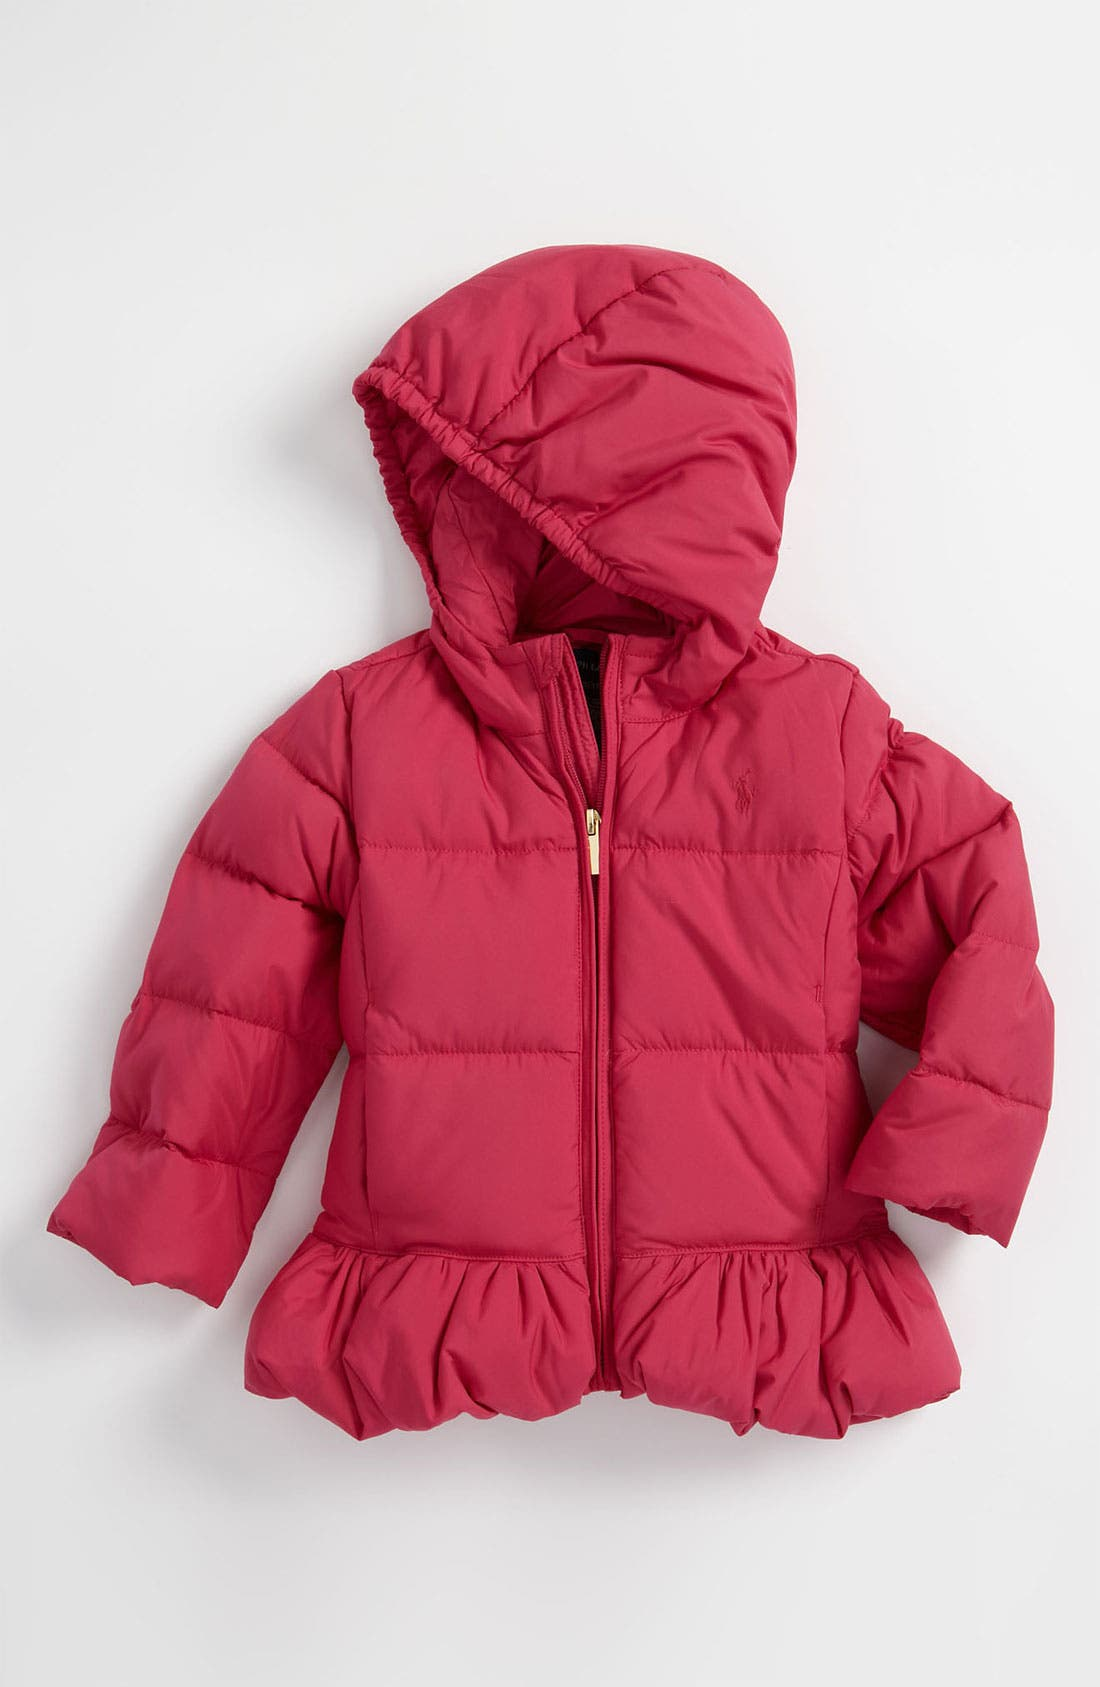 Alternate Image 1 Selected - Ralph Lauren Hooded Down Puffer Jacket (Toddler)